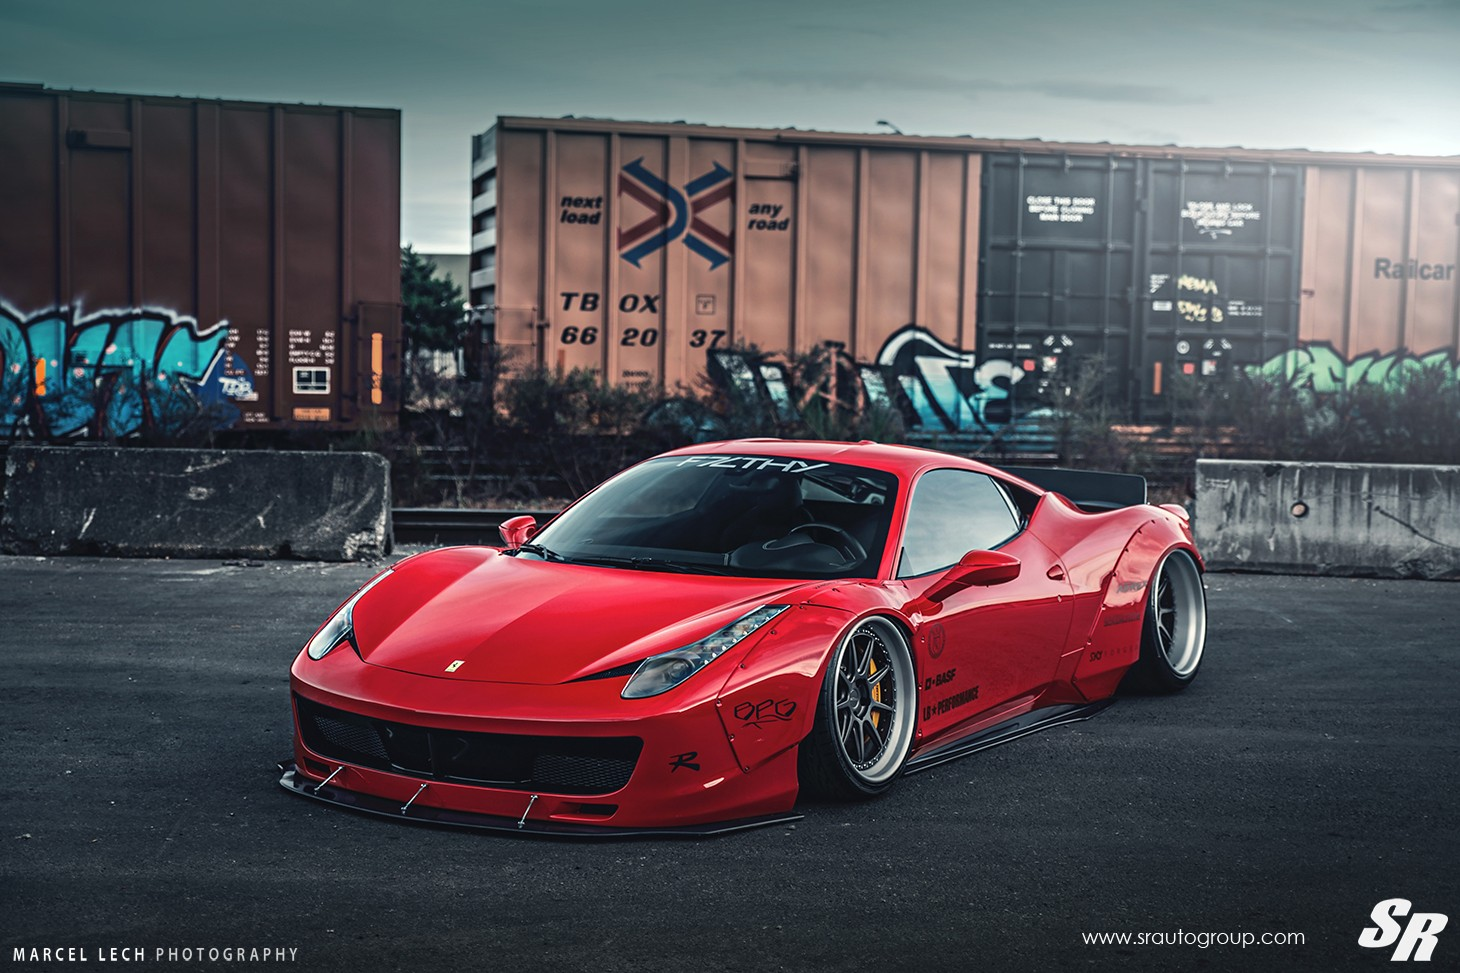 Ferrari F430 Wallpaper Hd Liberty Walk Ferrari 458 Italia On Pur Wheels Italian